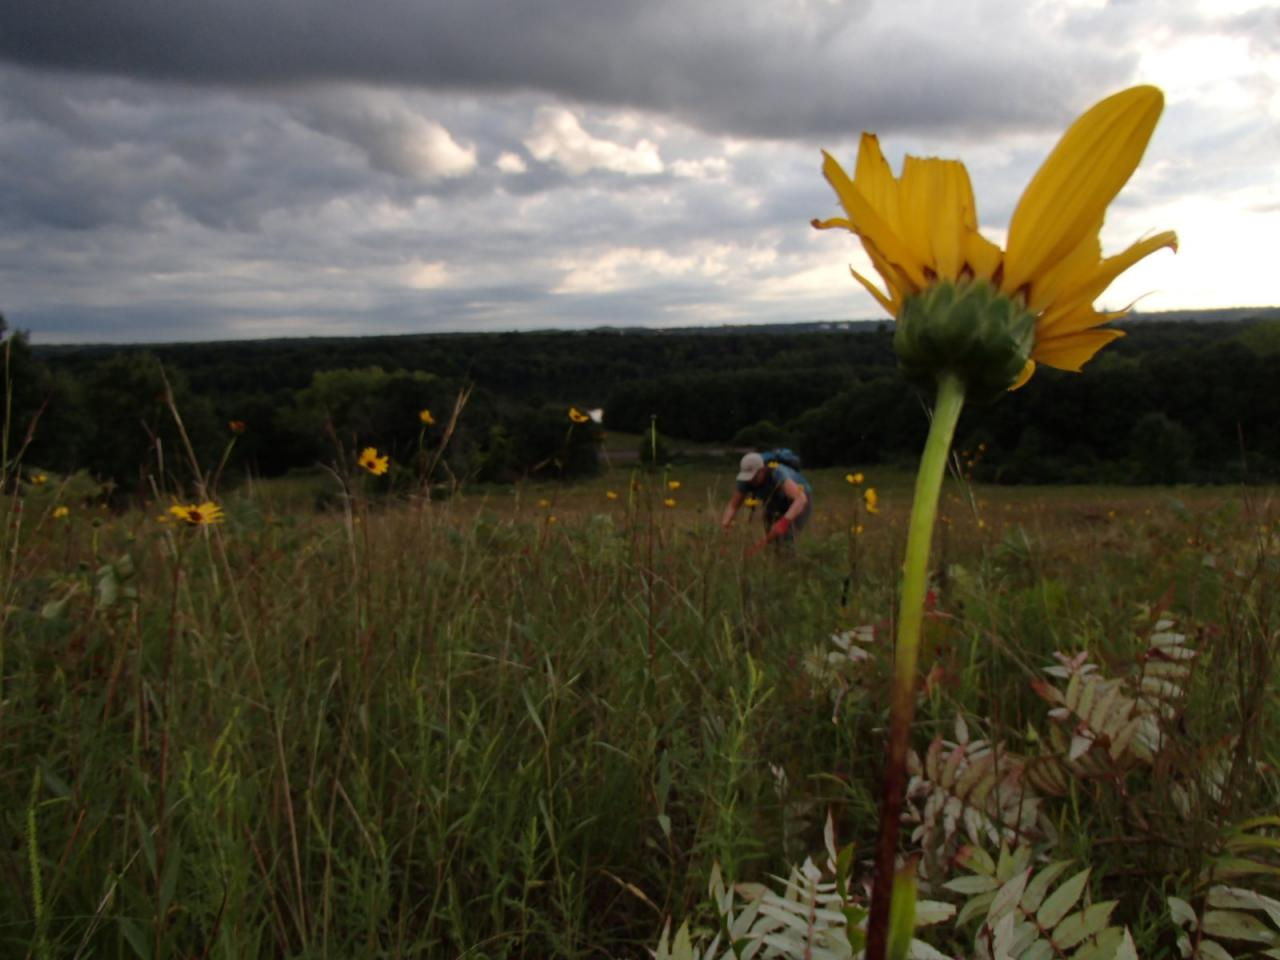 Volunteers lop sumac in the background, with a bright yellow prairie flower in the foreground.